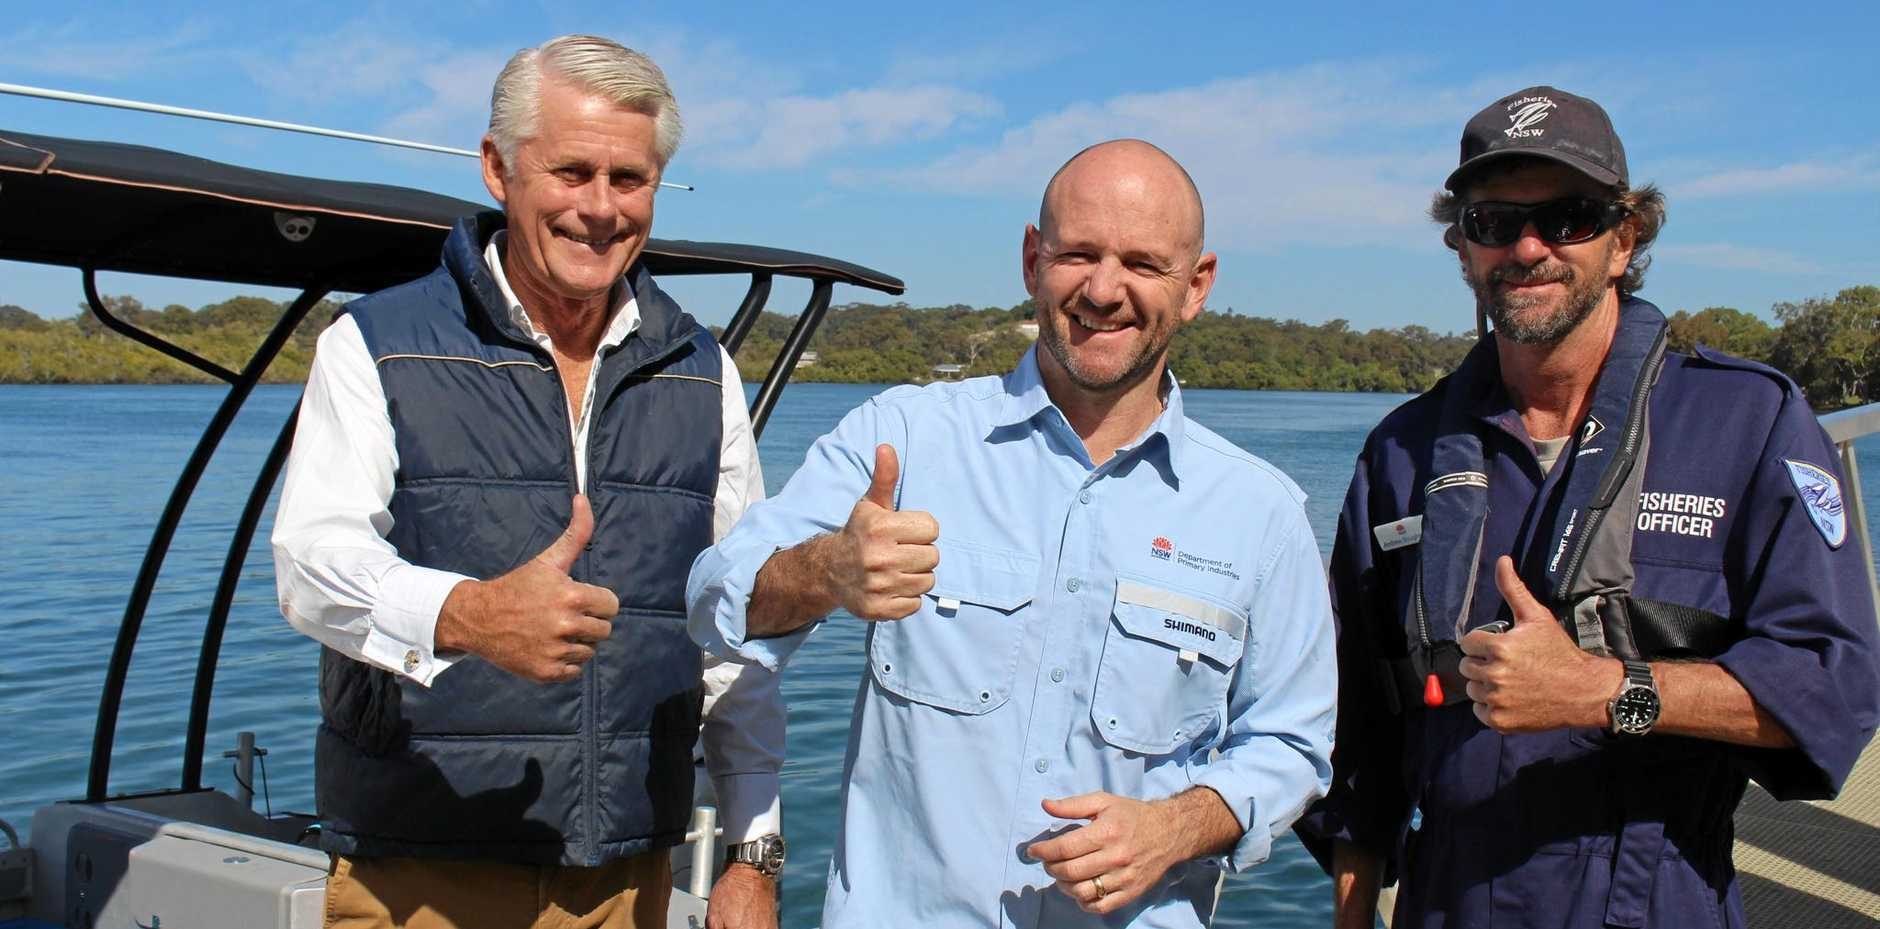 NSW Minister for Primary Industries Niall Blair announces a $1.1M artificial reef for the Tweed Coast alongside Tweed MP Geoff Provest and Department of Fisheries officer Andrew Boughton.